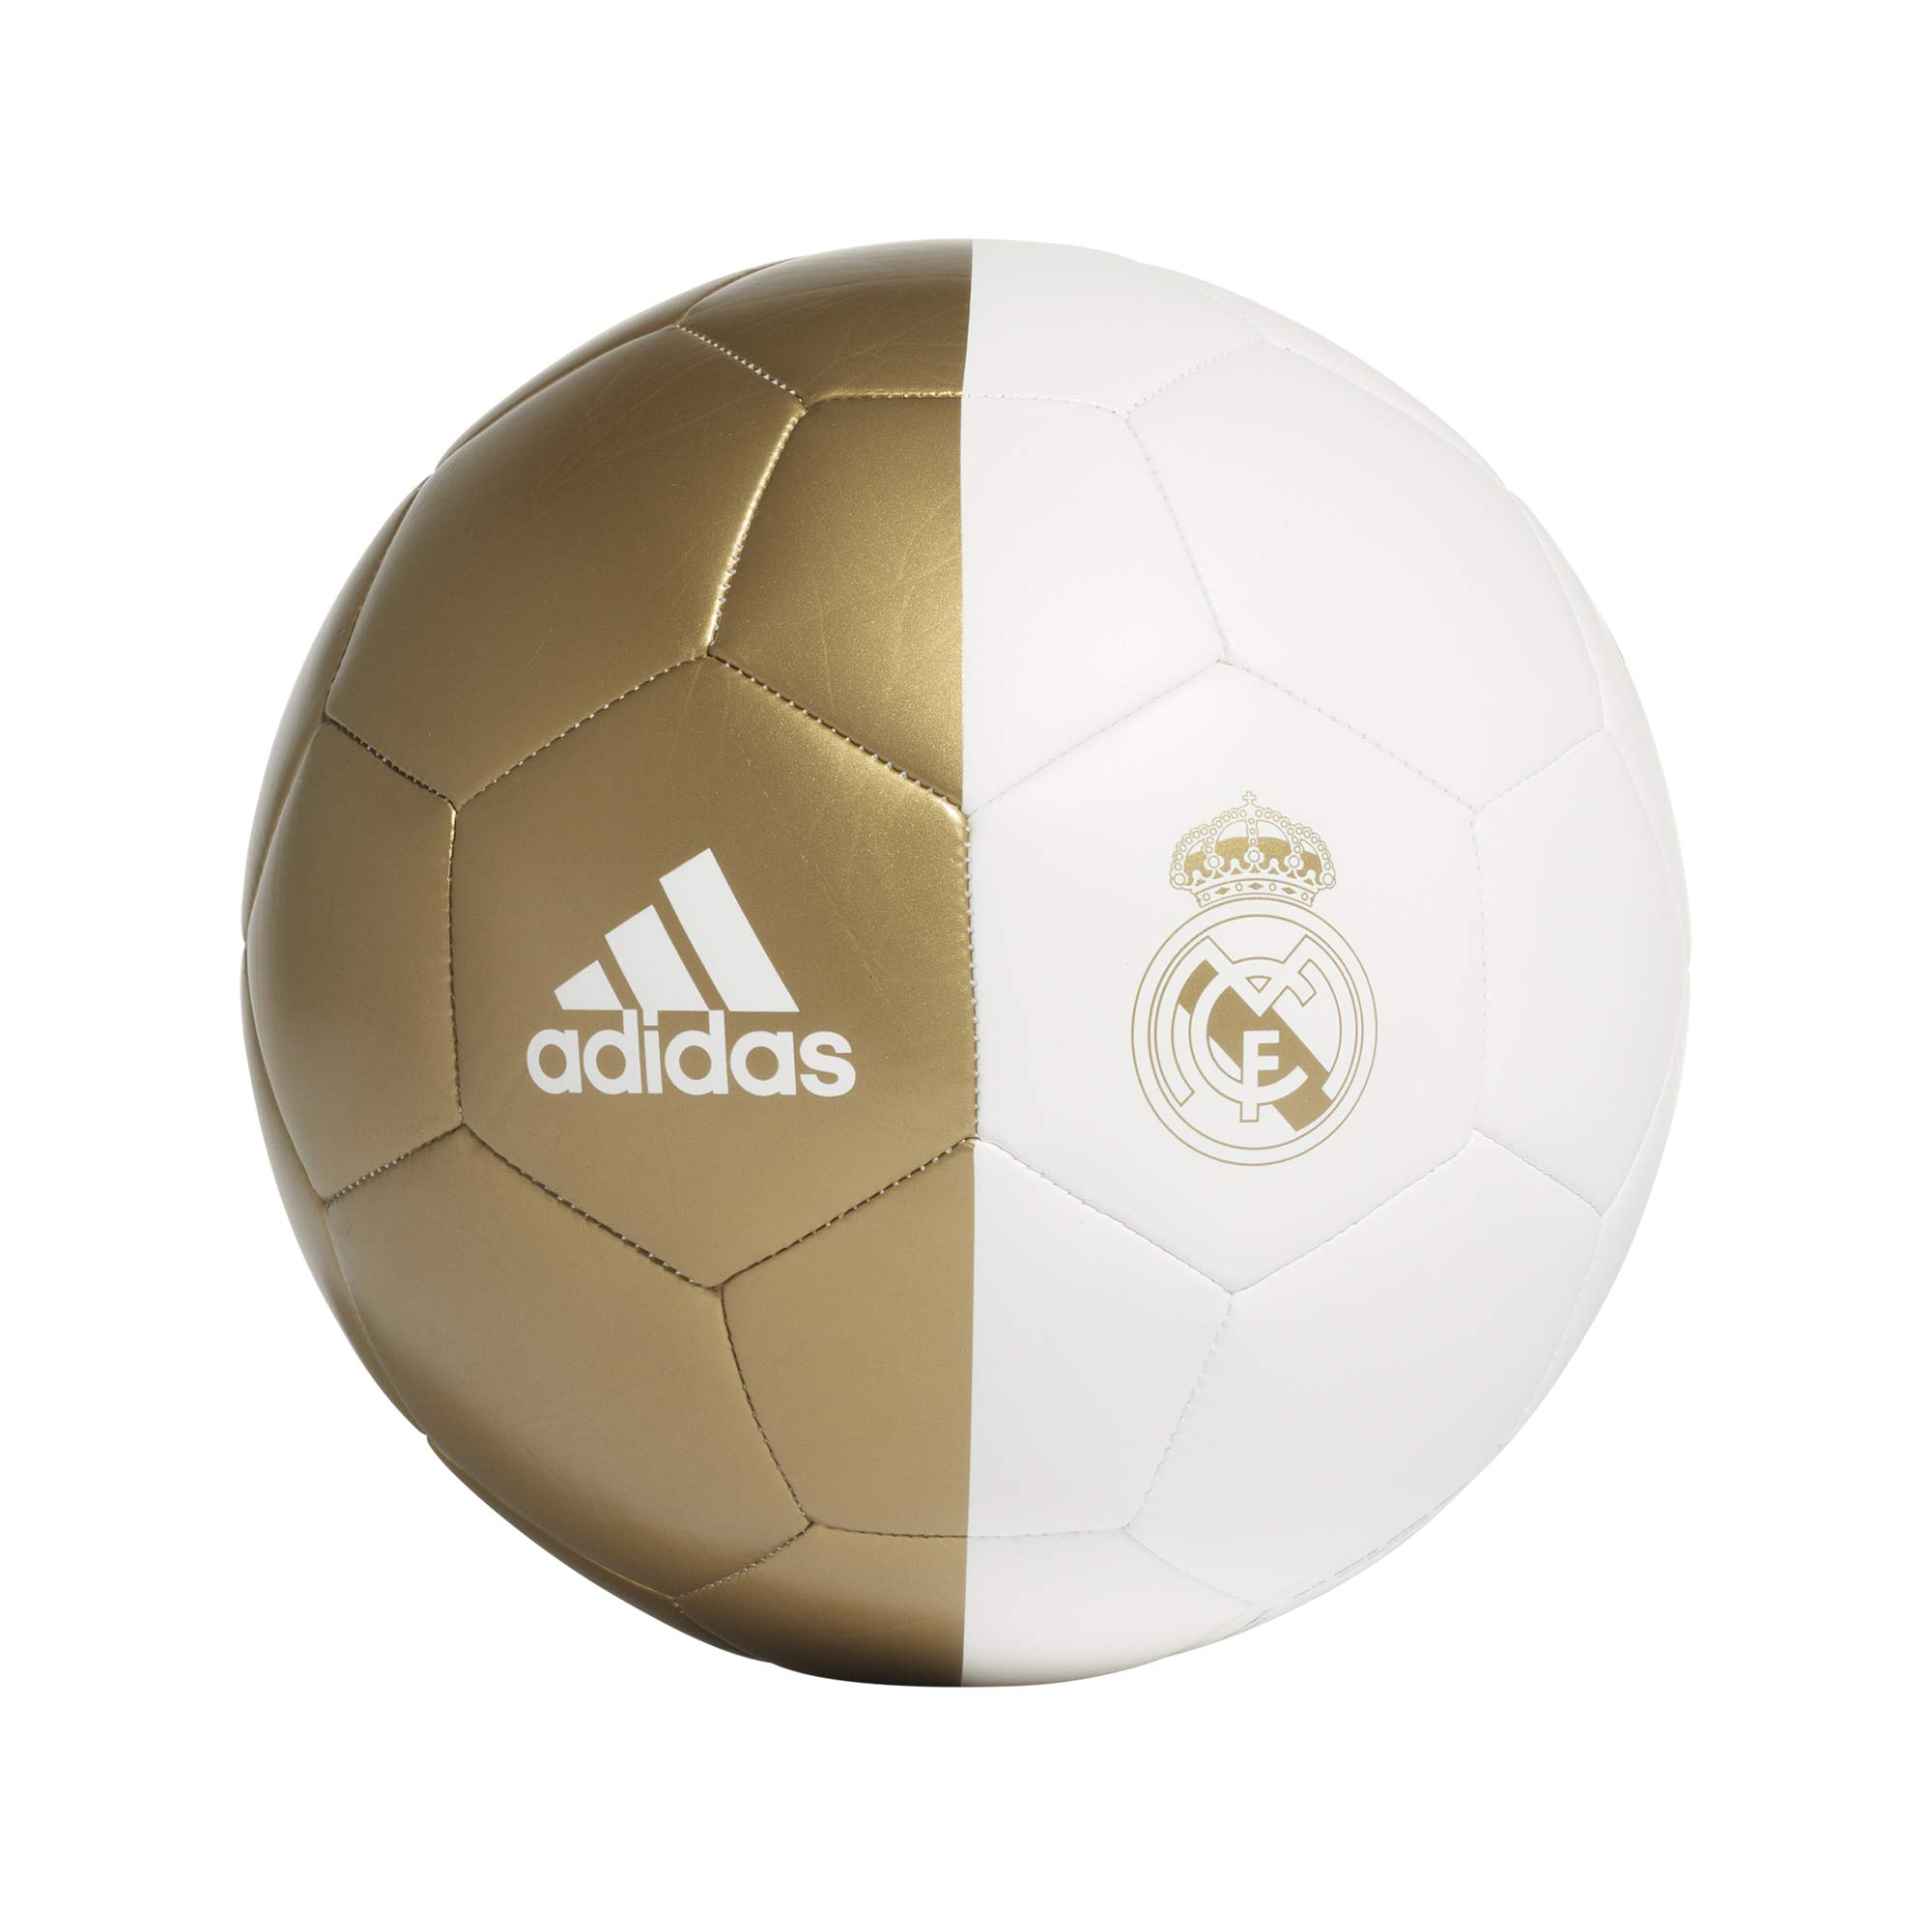 adidas RM CPT Balón de Fútbol, Mens, White/Dark Football Gold, 5 ...